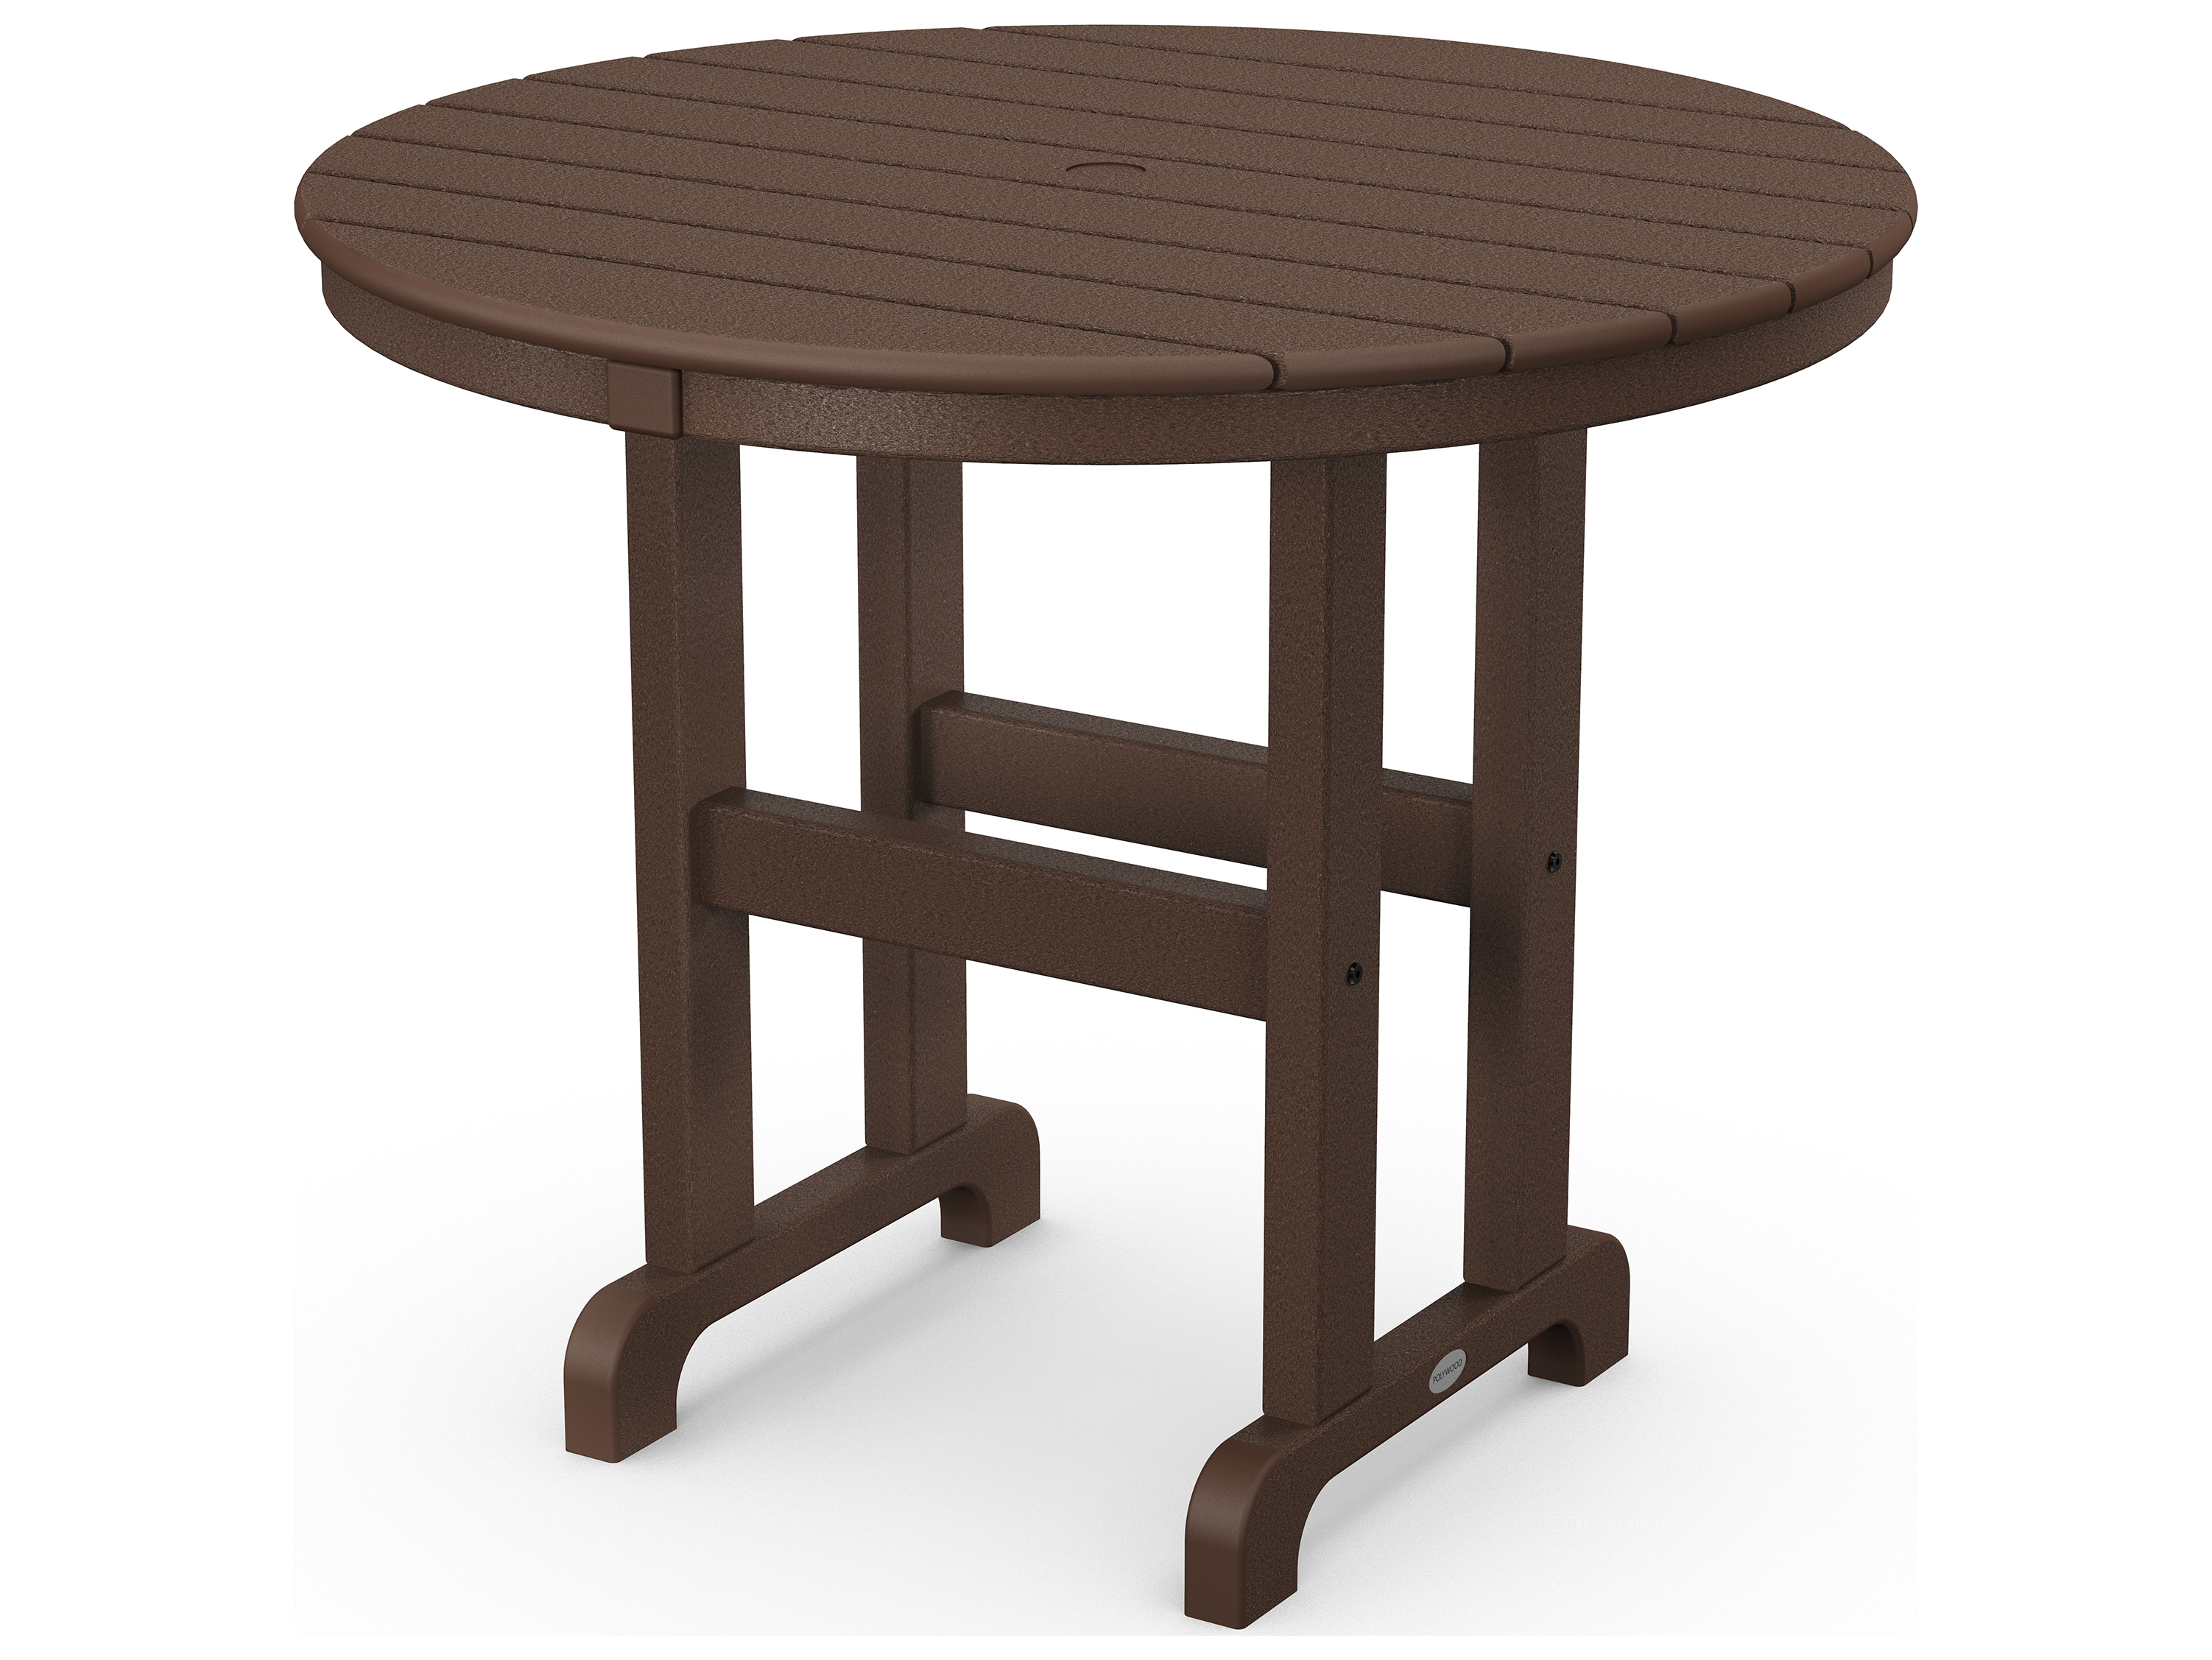 polywood la casa cafe recycled plastic 36 round dining table rt236